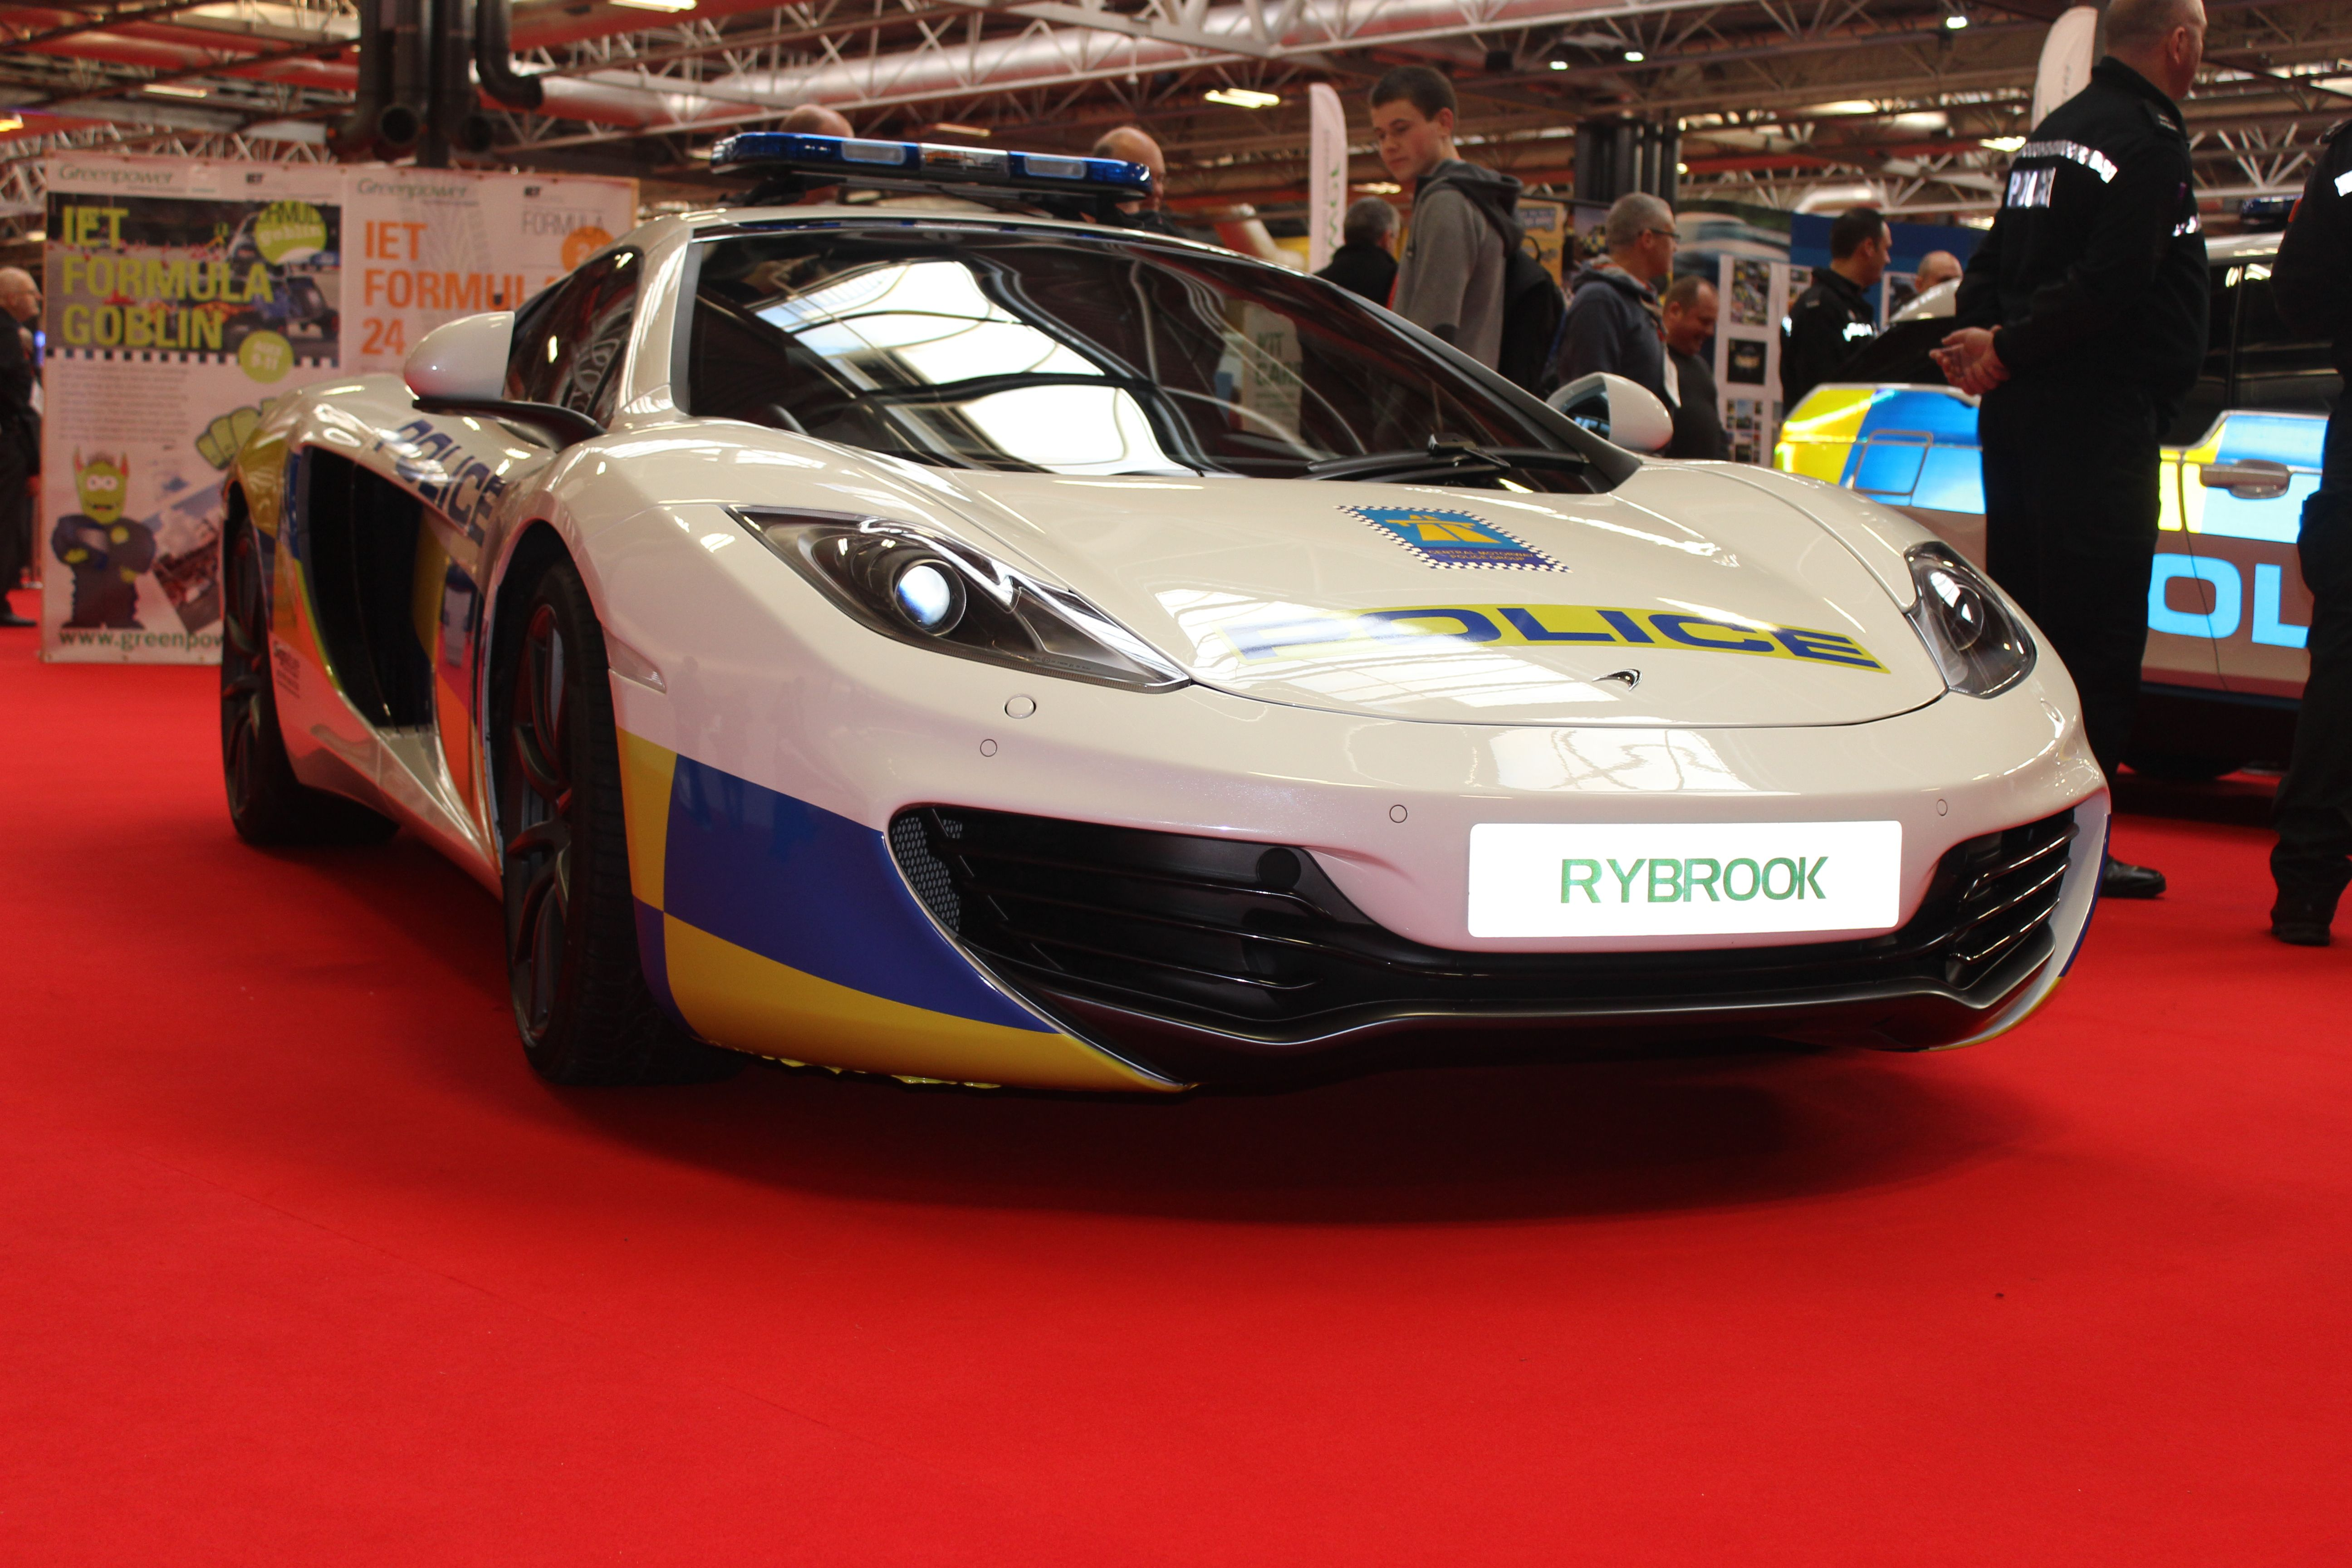 Uk Police Now Also Have Mclaren S In Their Fleet Bhp Cars Performance Supercar News Information Fleet Super Cars Mclaren